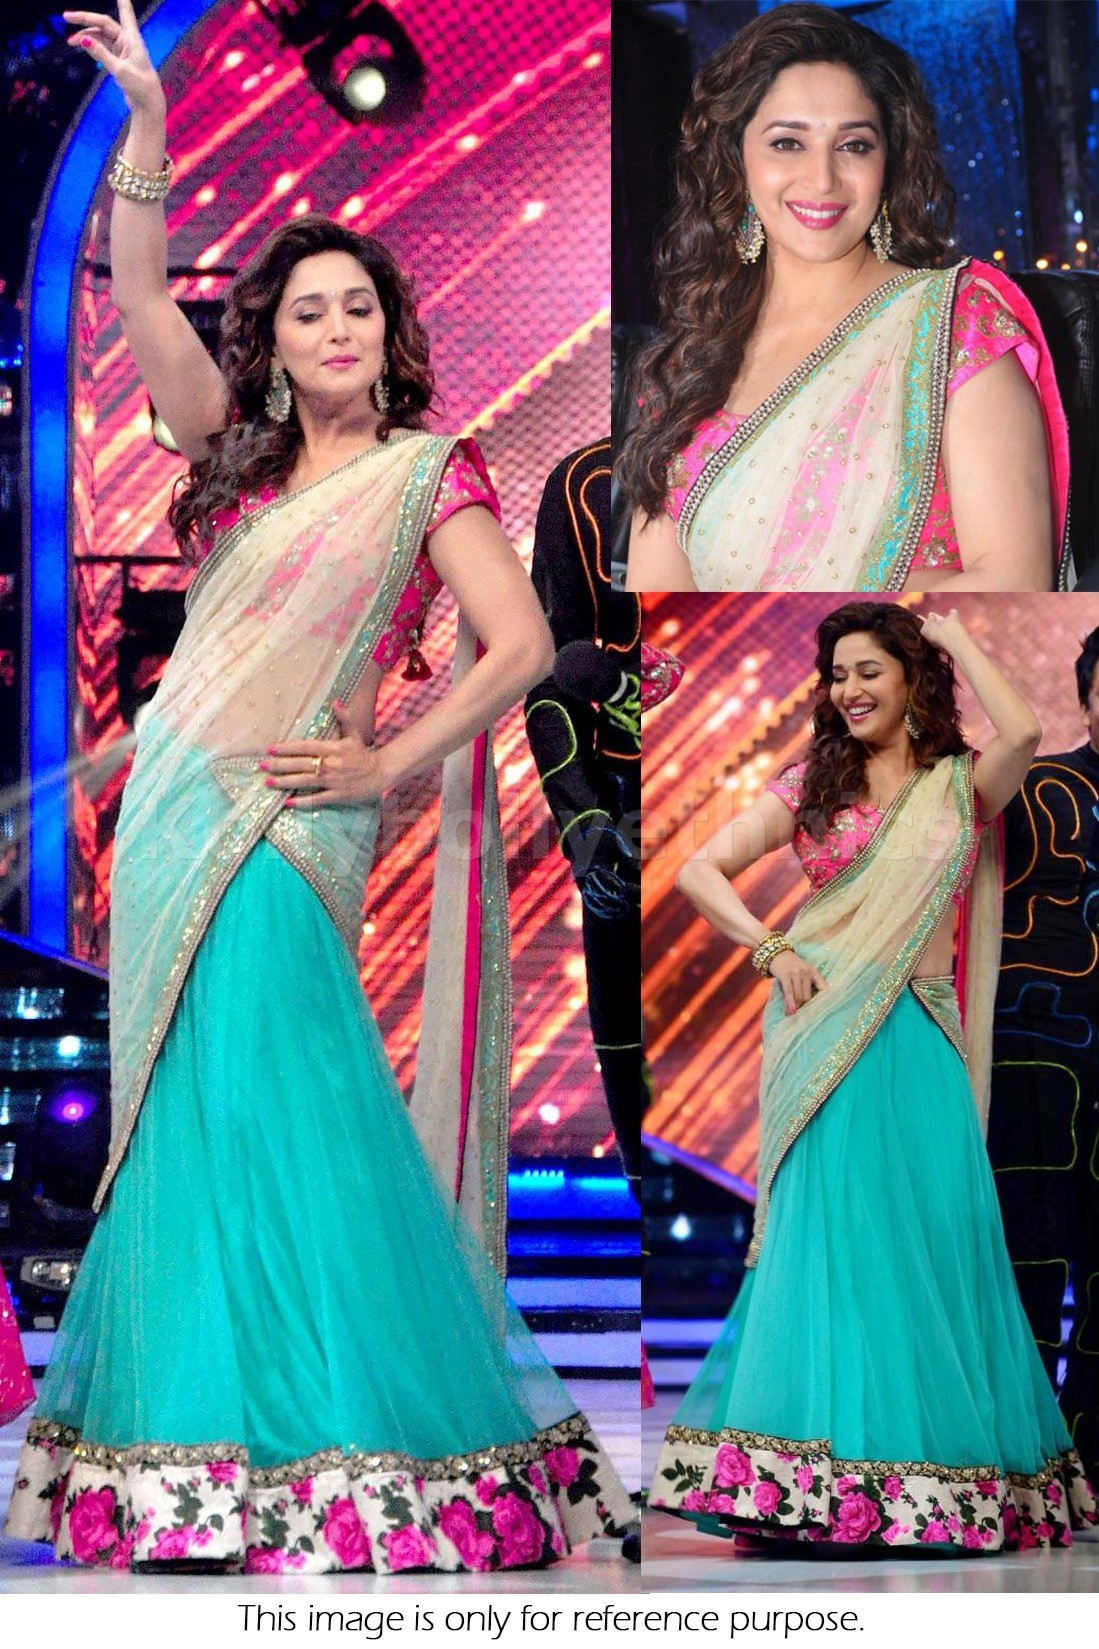 Bollywood Style Madhuri Dixit georgette lehenga in blue and white color